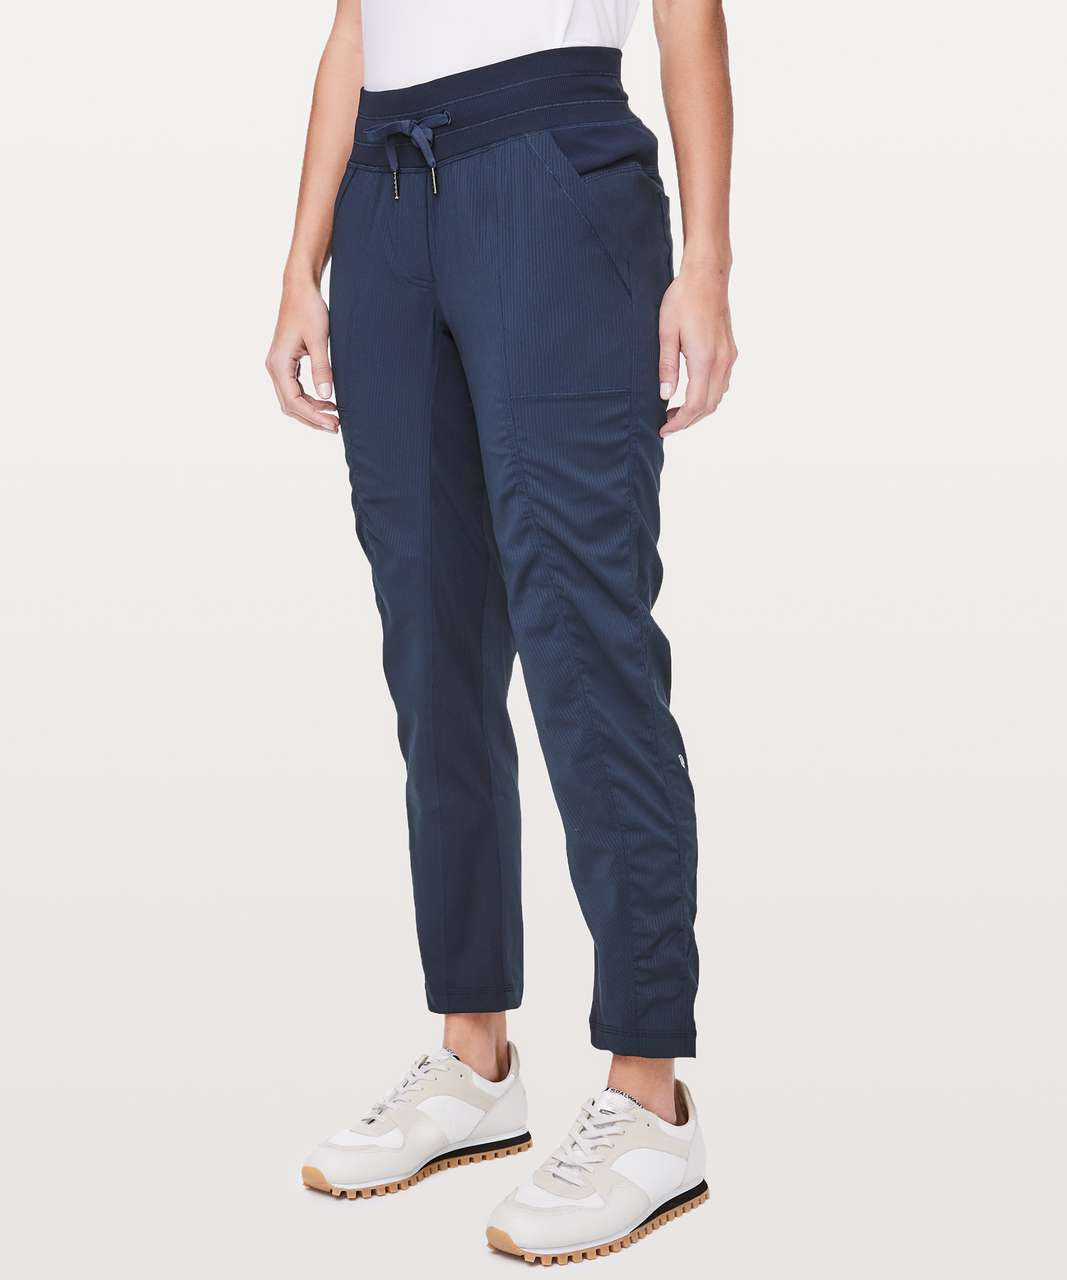 "Lululemon Street To Studio Pant II *Unlined 28"" - True Navy"